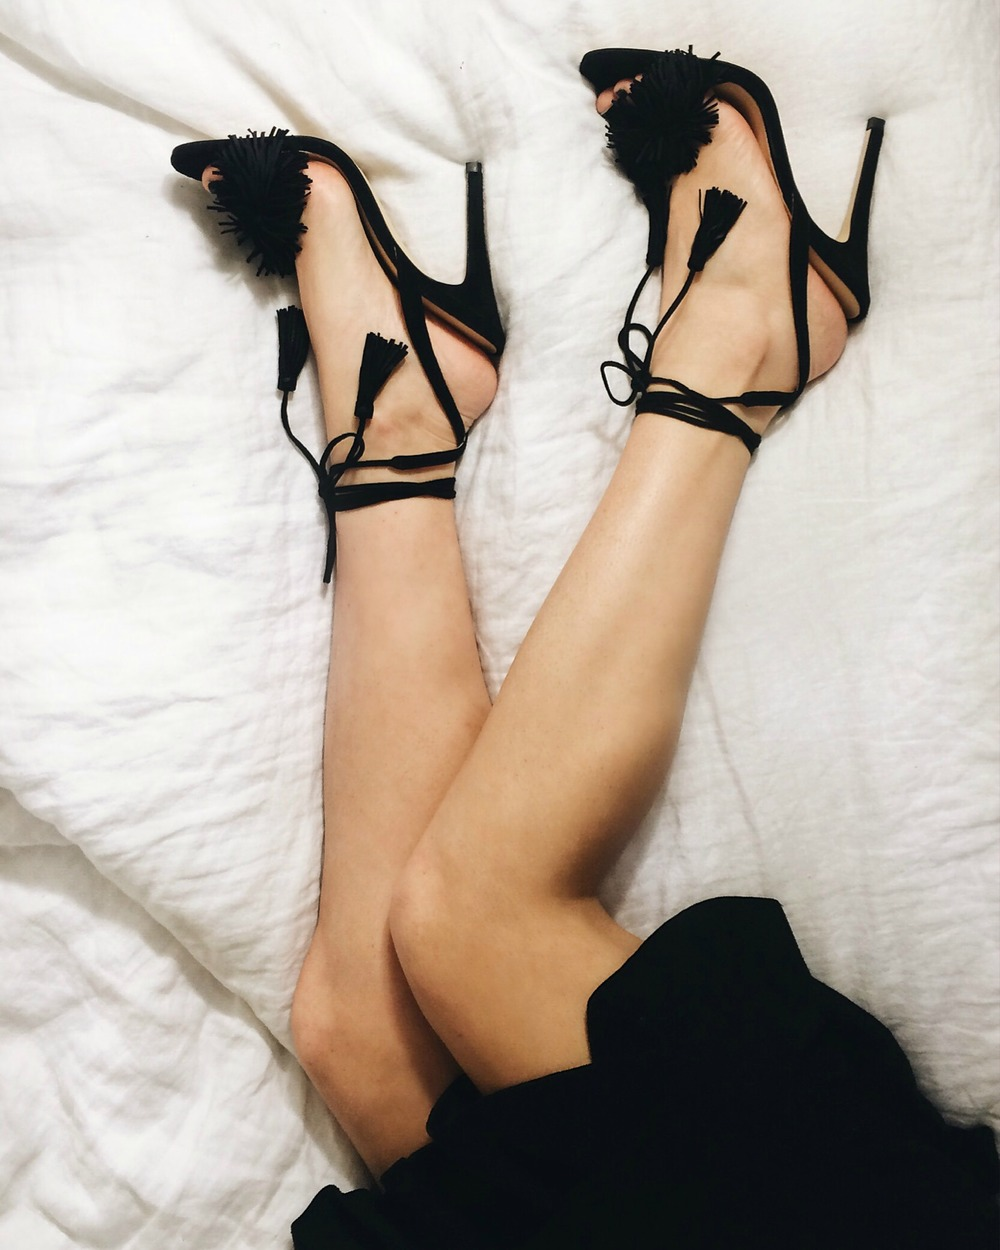 Black Fringe Tassel Sandals Ivanka Trump Louboutins & Love Fashion Blog Esther Santer NYC Street Style Blogger Shoes Summer Spring Sexy Heels Legs Feet Pretty Beatiful Women Girls Stilettos Nordstrom Bloomingdales Lord Taylor Shop Wear Inspo Gorgeous.jpg